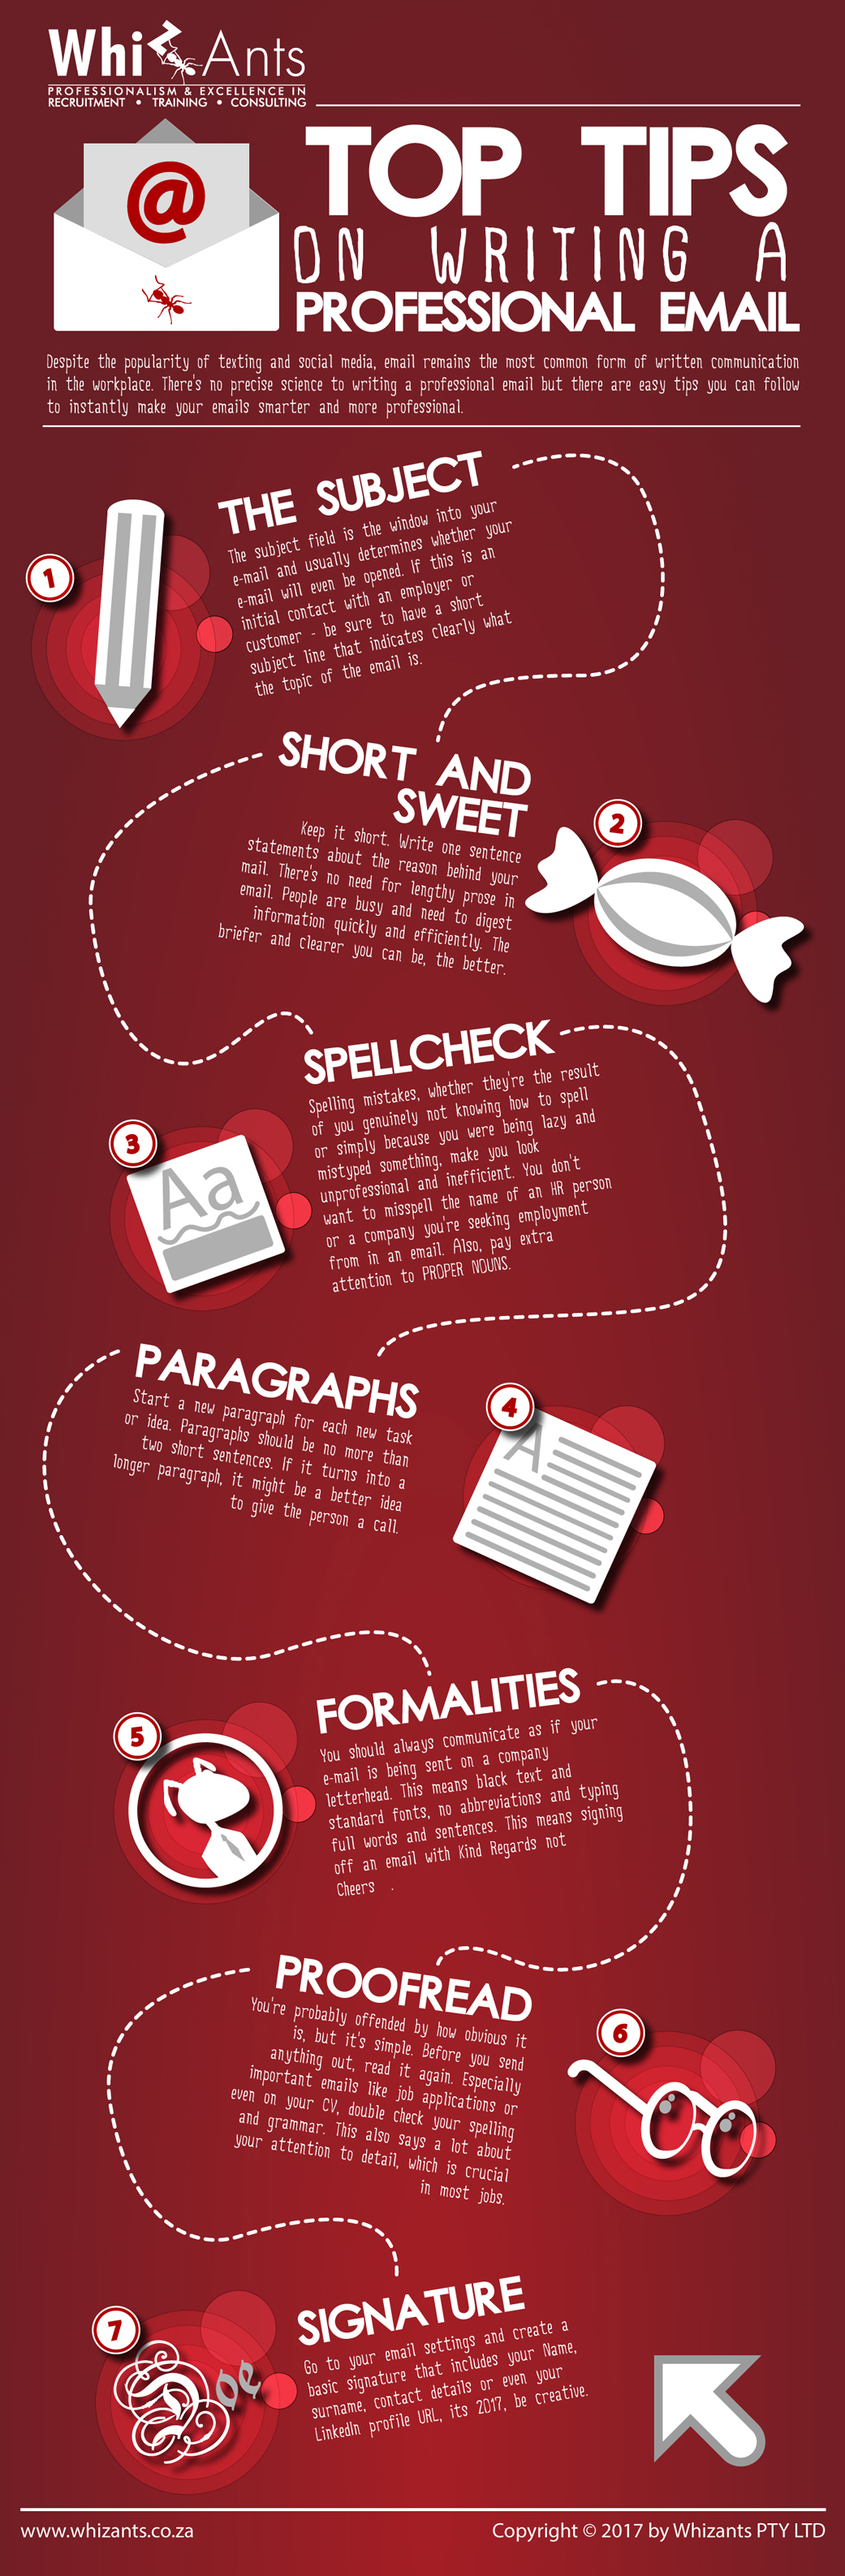 writing a professional email infographic